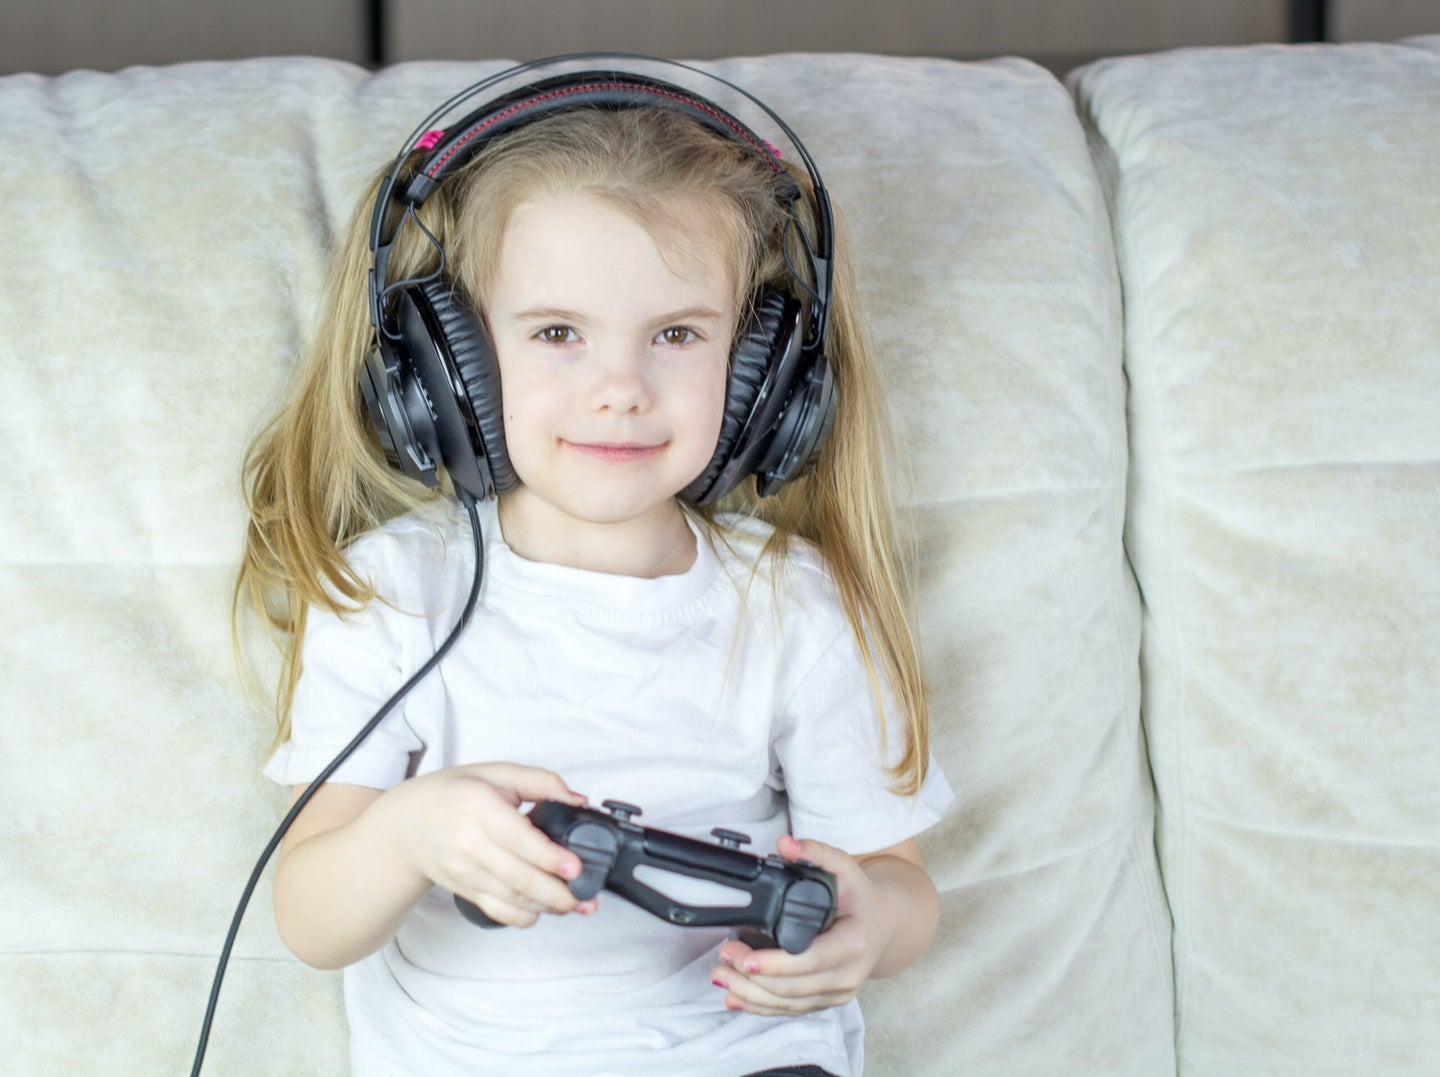 A child with headphones playing video games